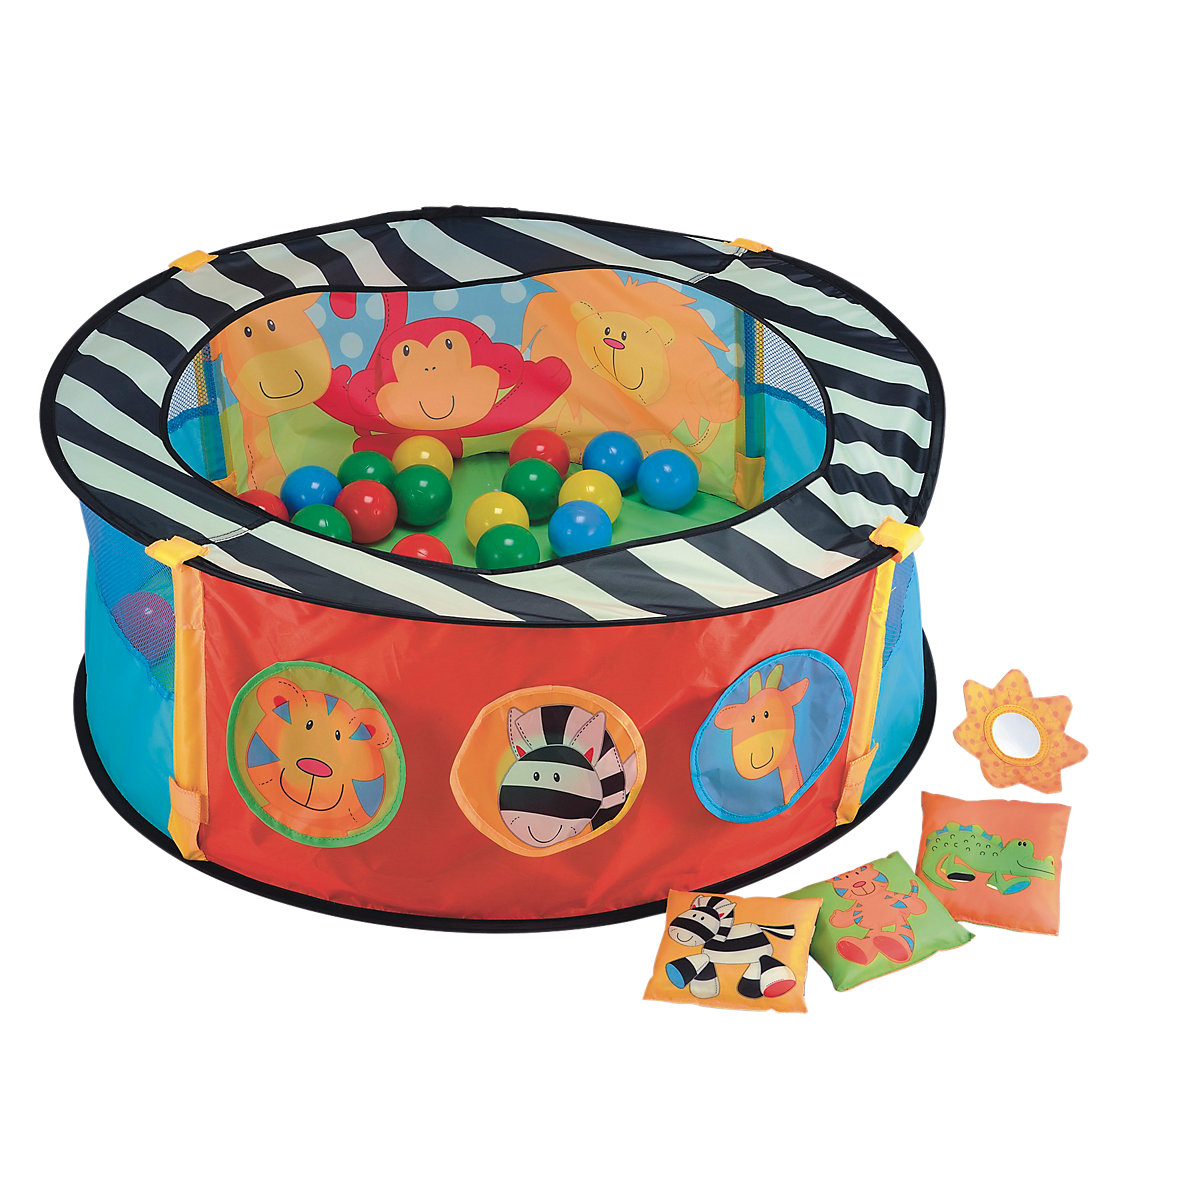 New ELC Boys and Girls Sensory Ball Pit Baby Toy From 6 months - Toddler Gifts